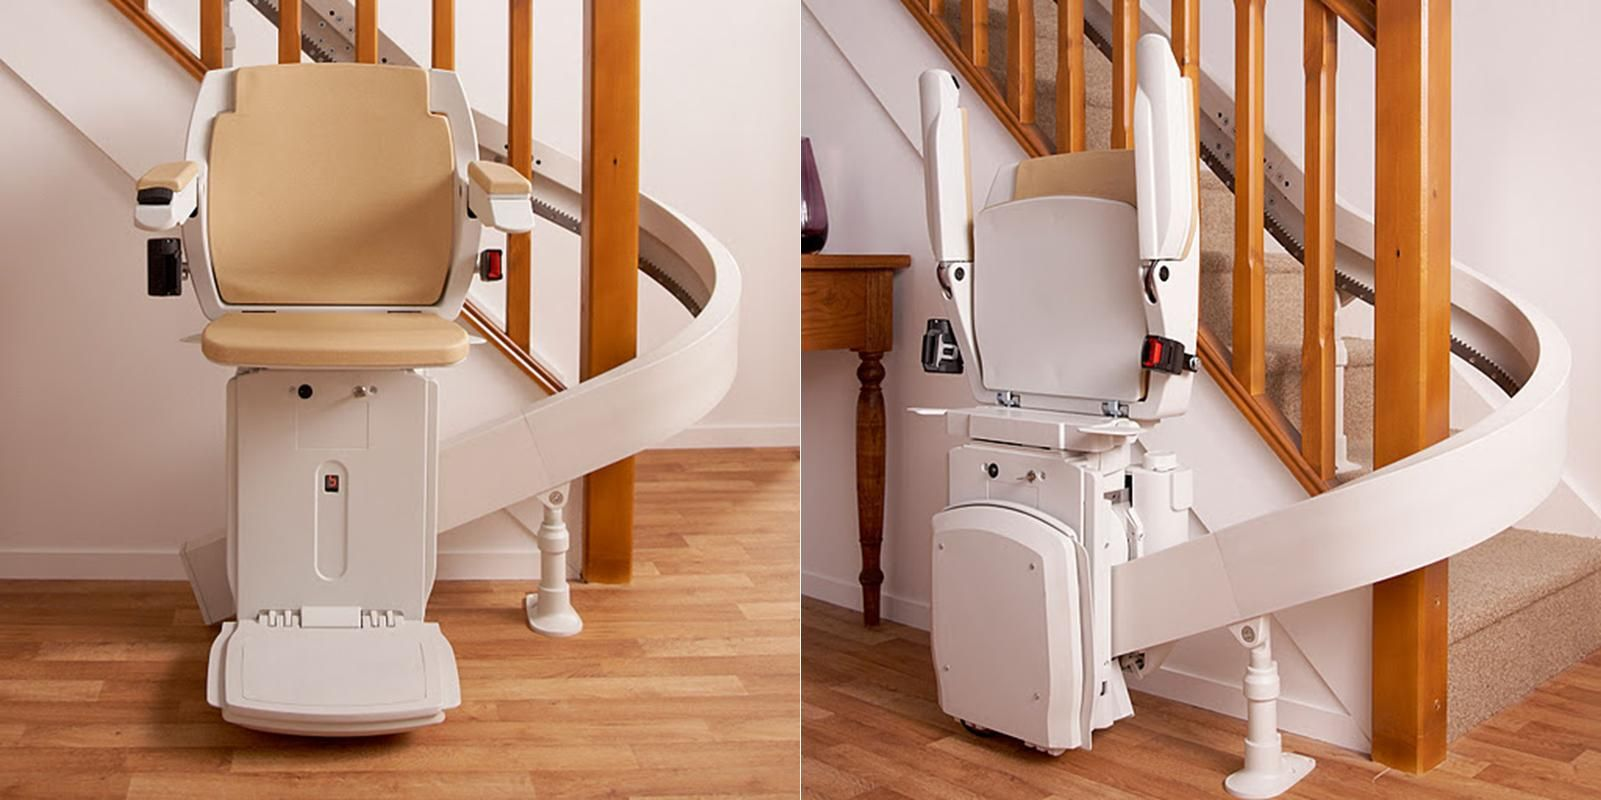 Outdoor Chair Lifts Ascent Stairlifts Is A Nationwide Wholesaler Of Indoor Stairlift